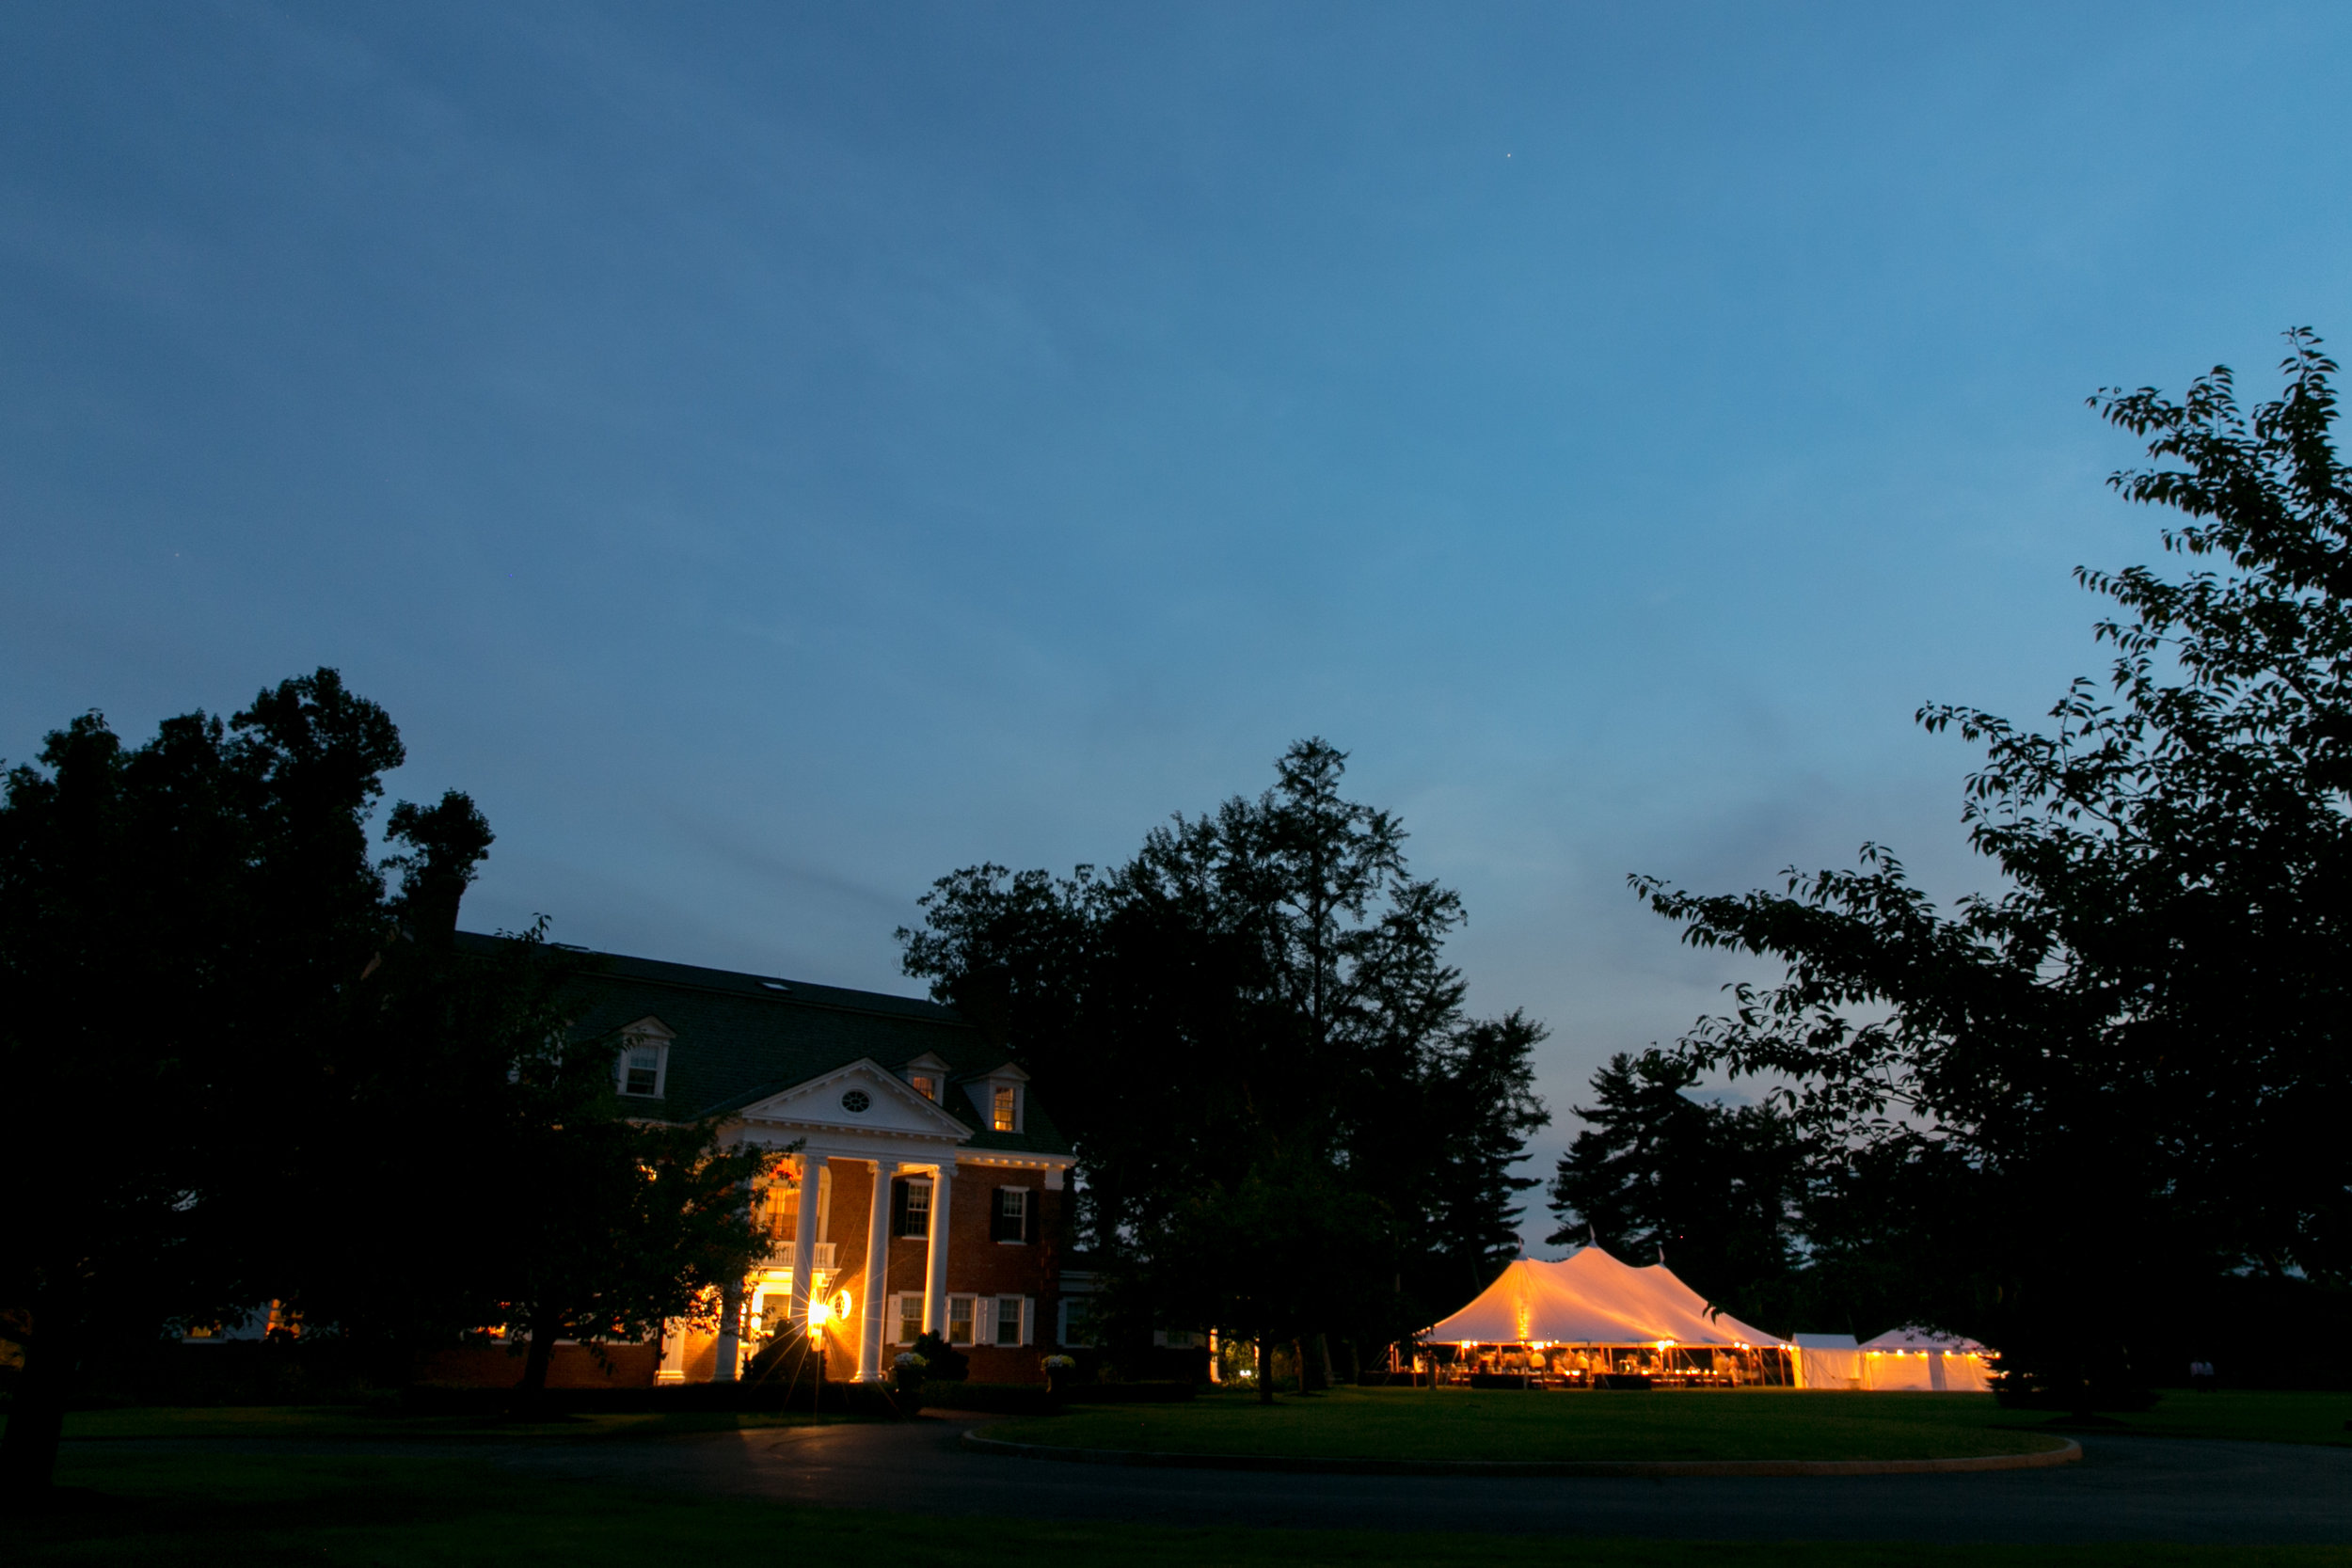 Dinner and dancing took place under a crisp sailcloth tent adjacent to the main house.